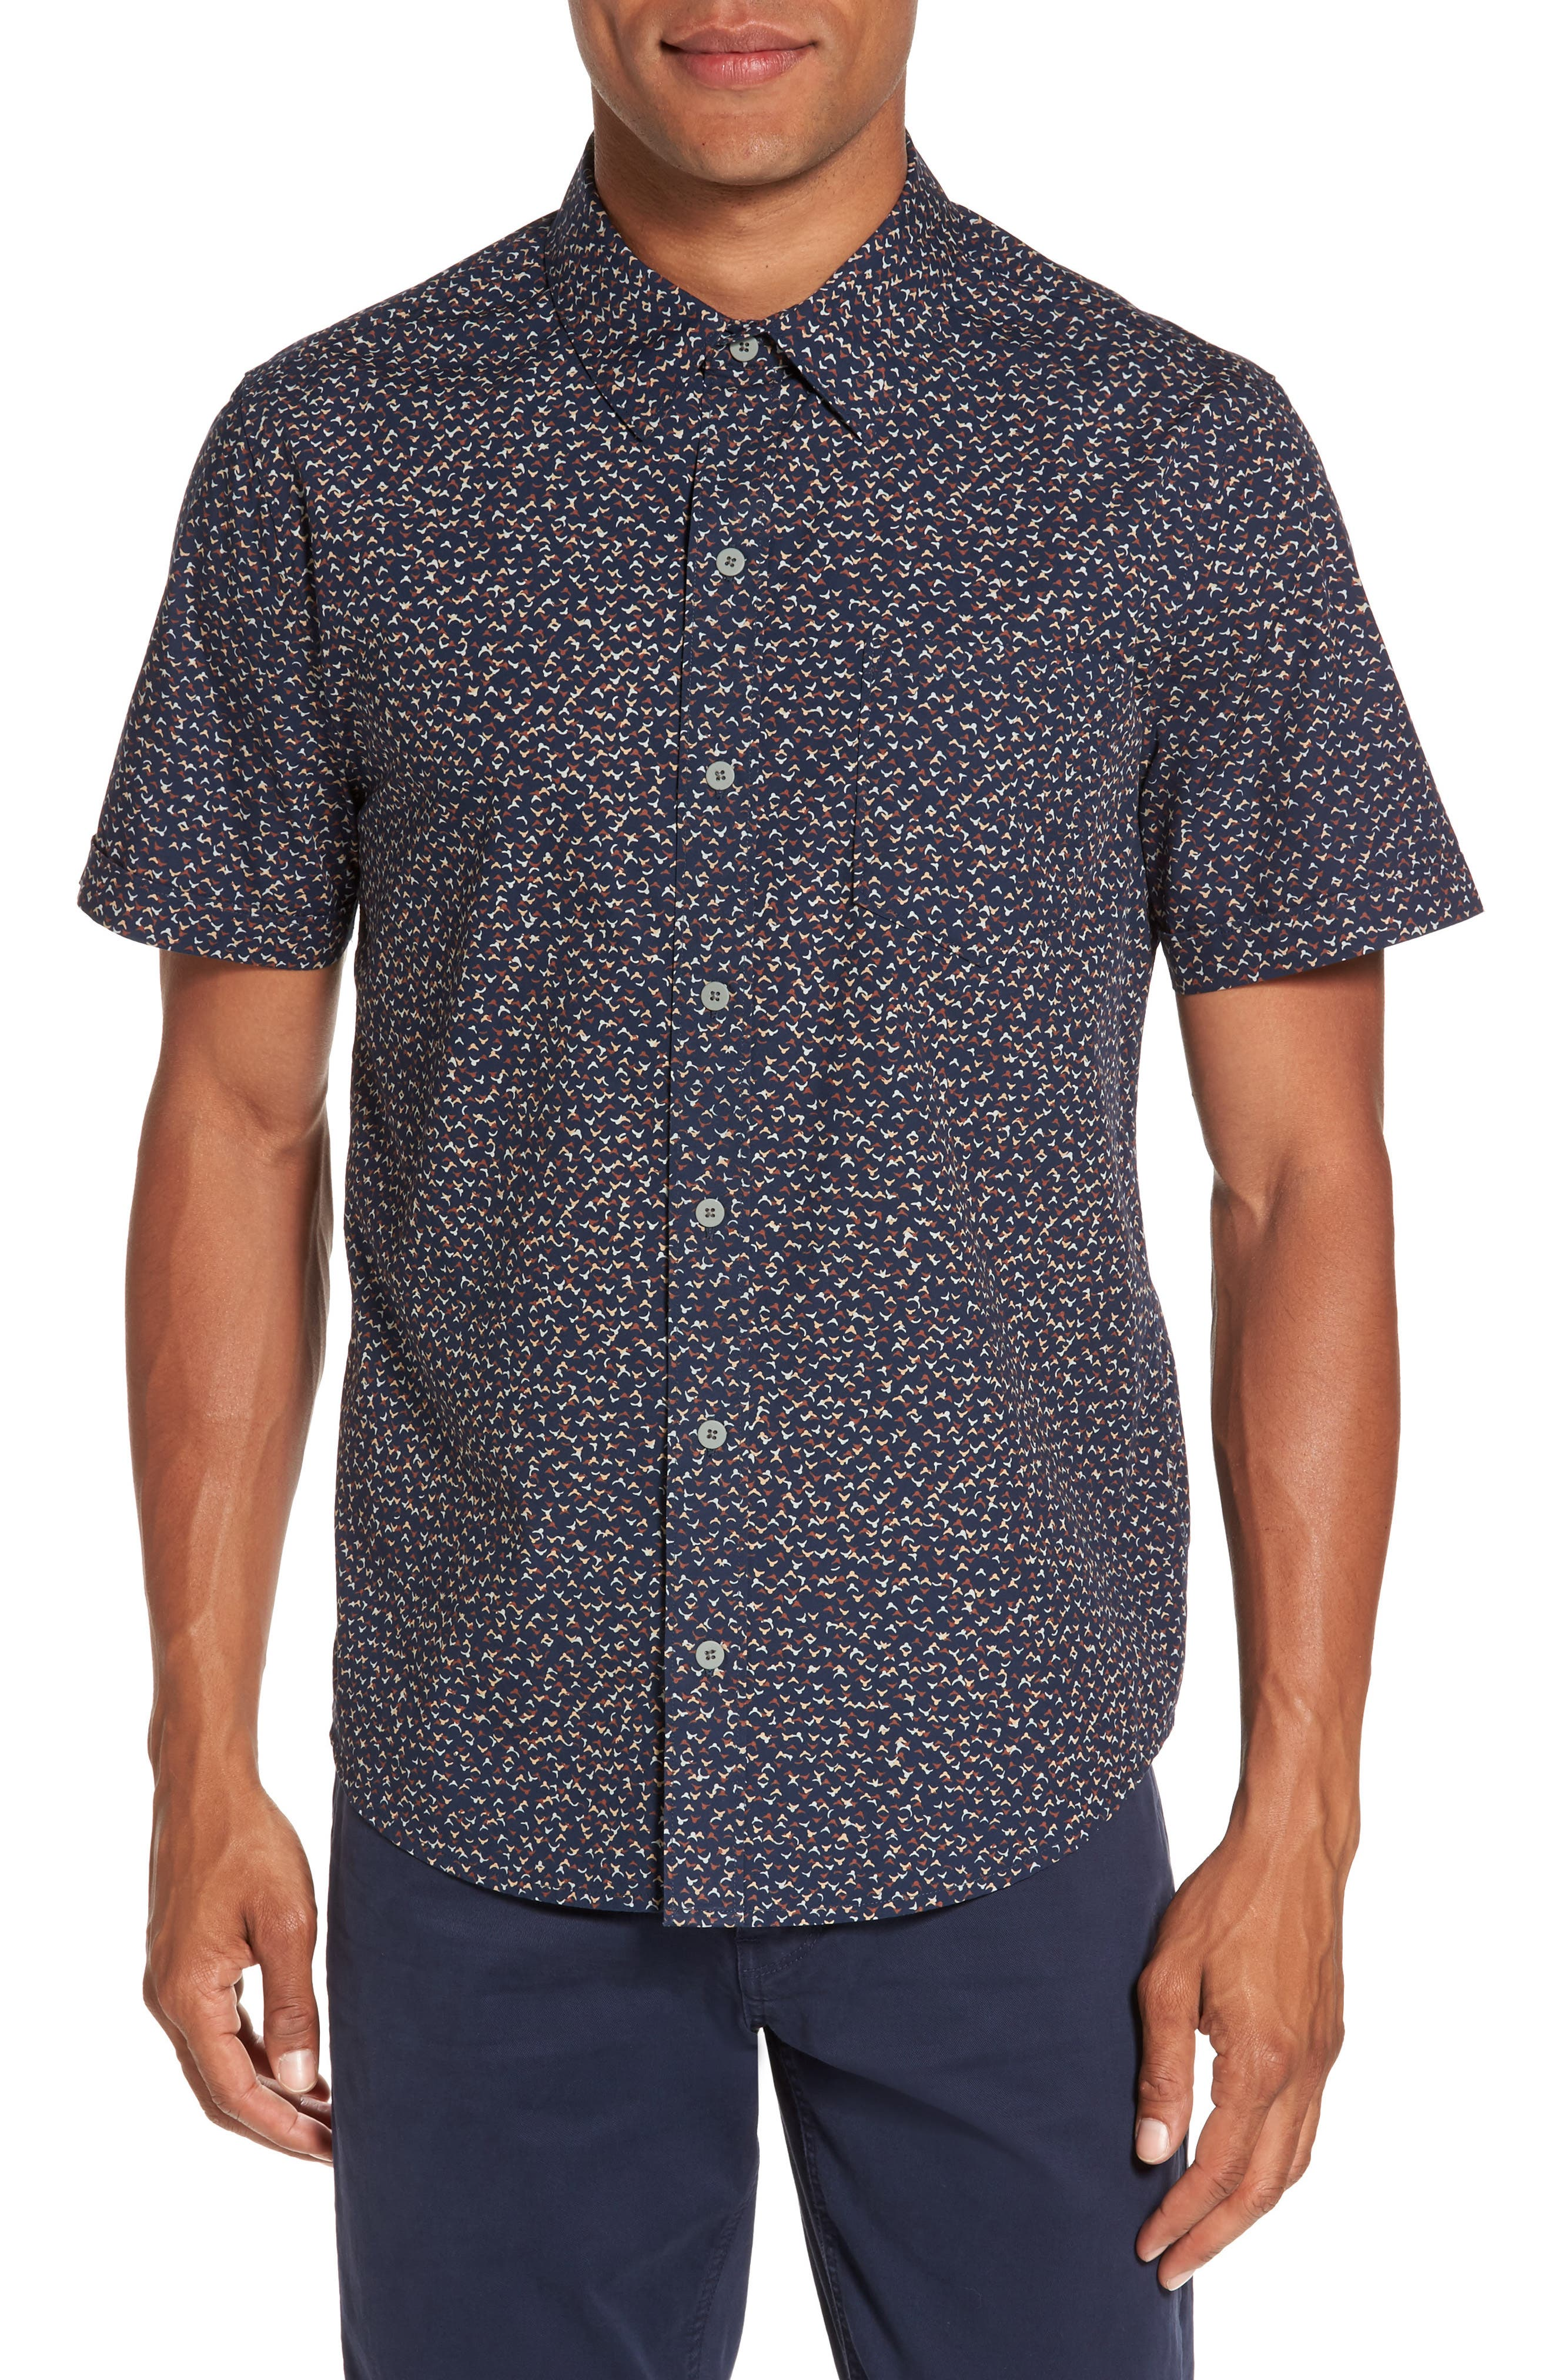 Alternate Image 1 Selected - PAIGE Becker Patterned Woven Shirt